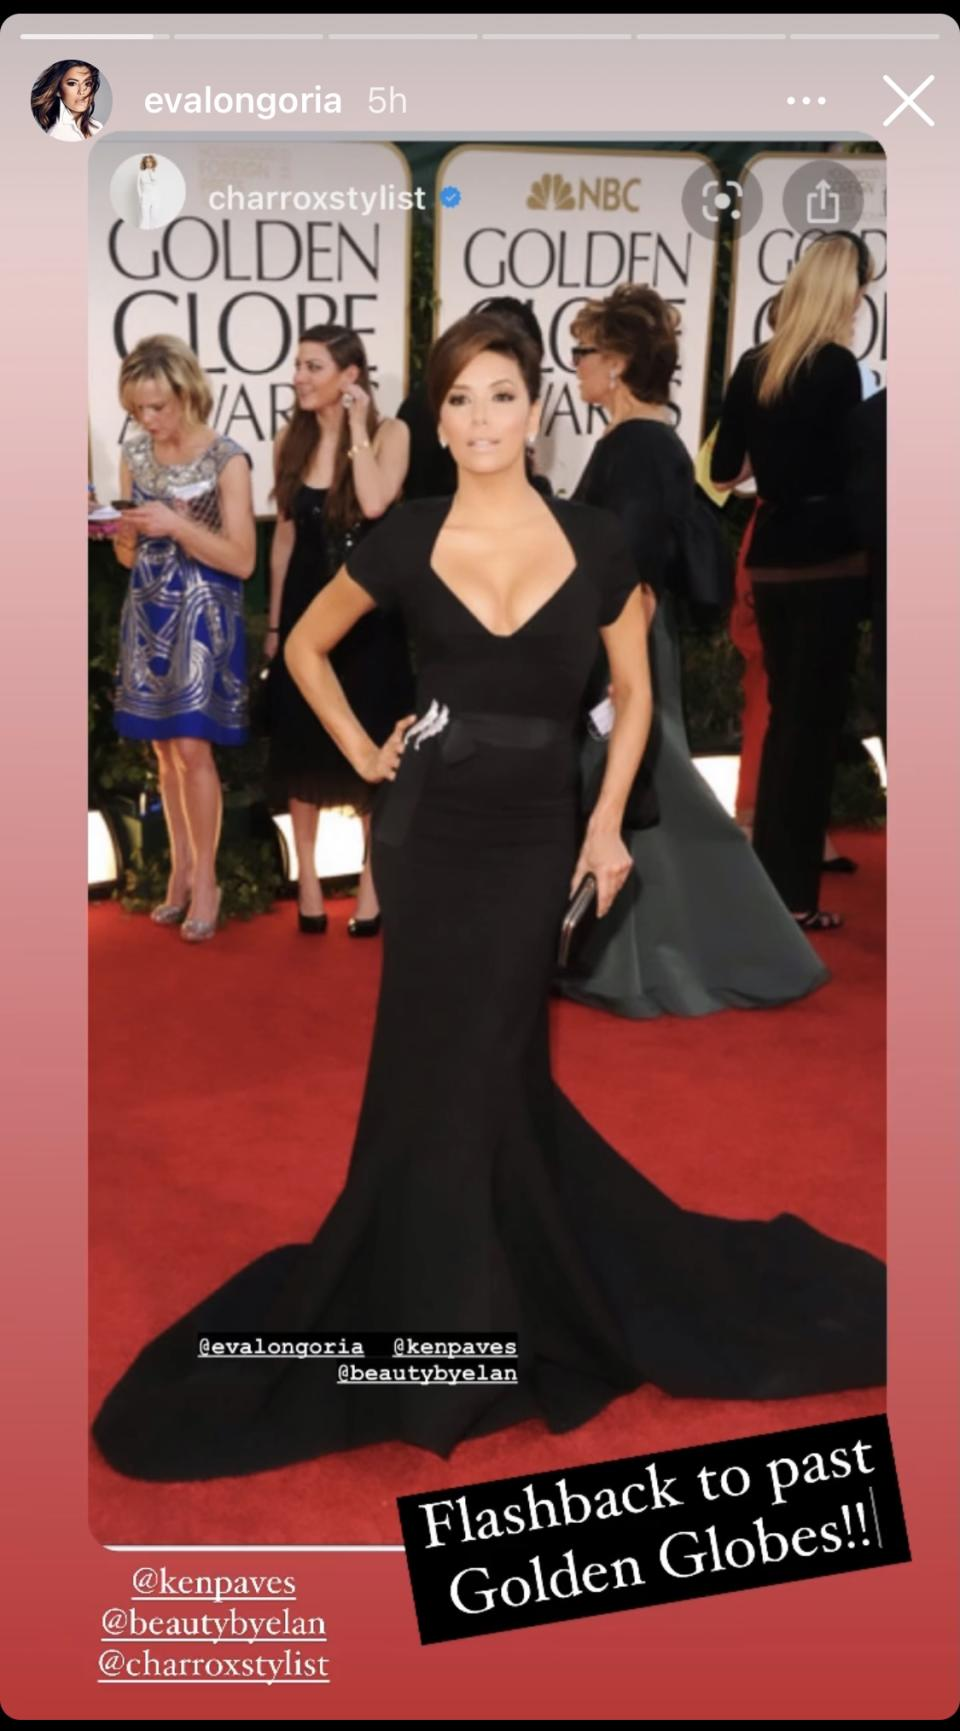 "<p>Kicking off her trip down memory lane, Longoria flashed back to her appearance at the 2011 Golden Globes. For the event, the former ""Desperate Housewives"" star stunned in a plunging Zac Posen gown with a sweetheart neckline and open back. Image via Instagram/EvaLongoria.</p>"